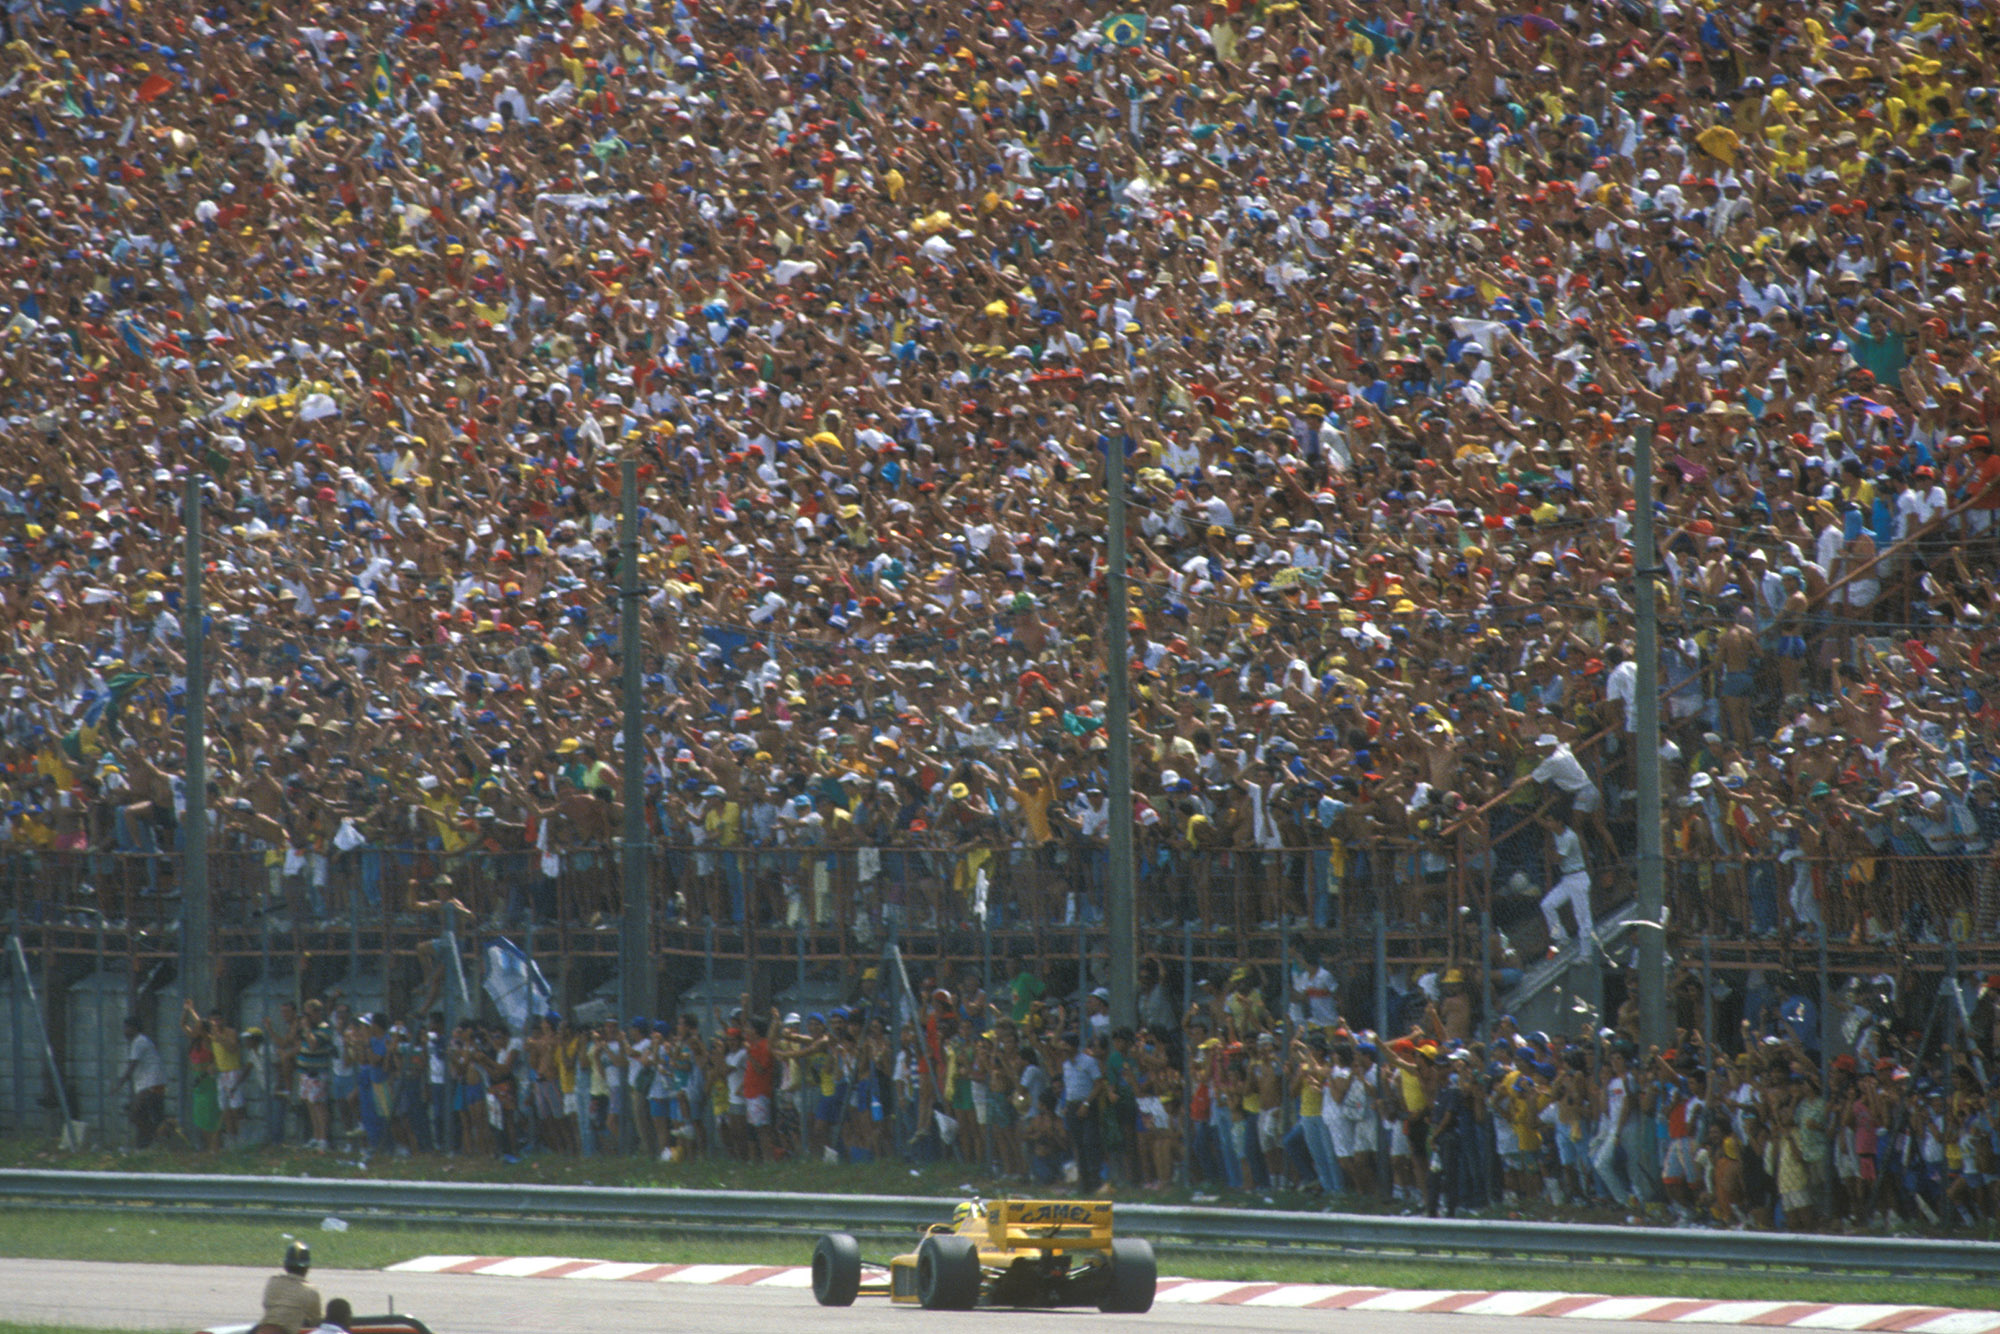 Ayrton Senna drives in front of a packed grandstand of fans at the 1987 Brazilian Grand Prix